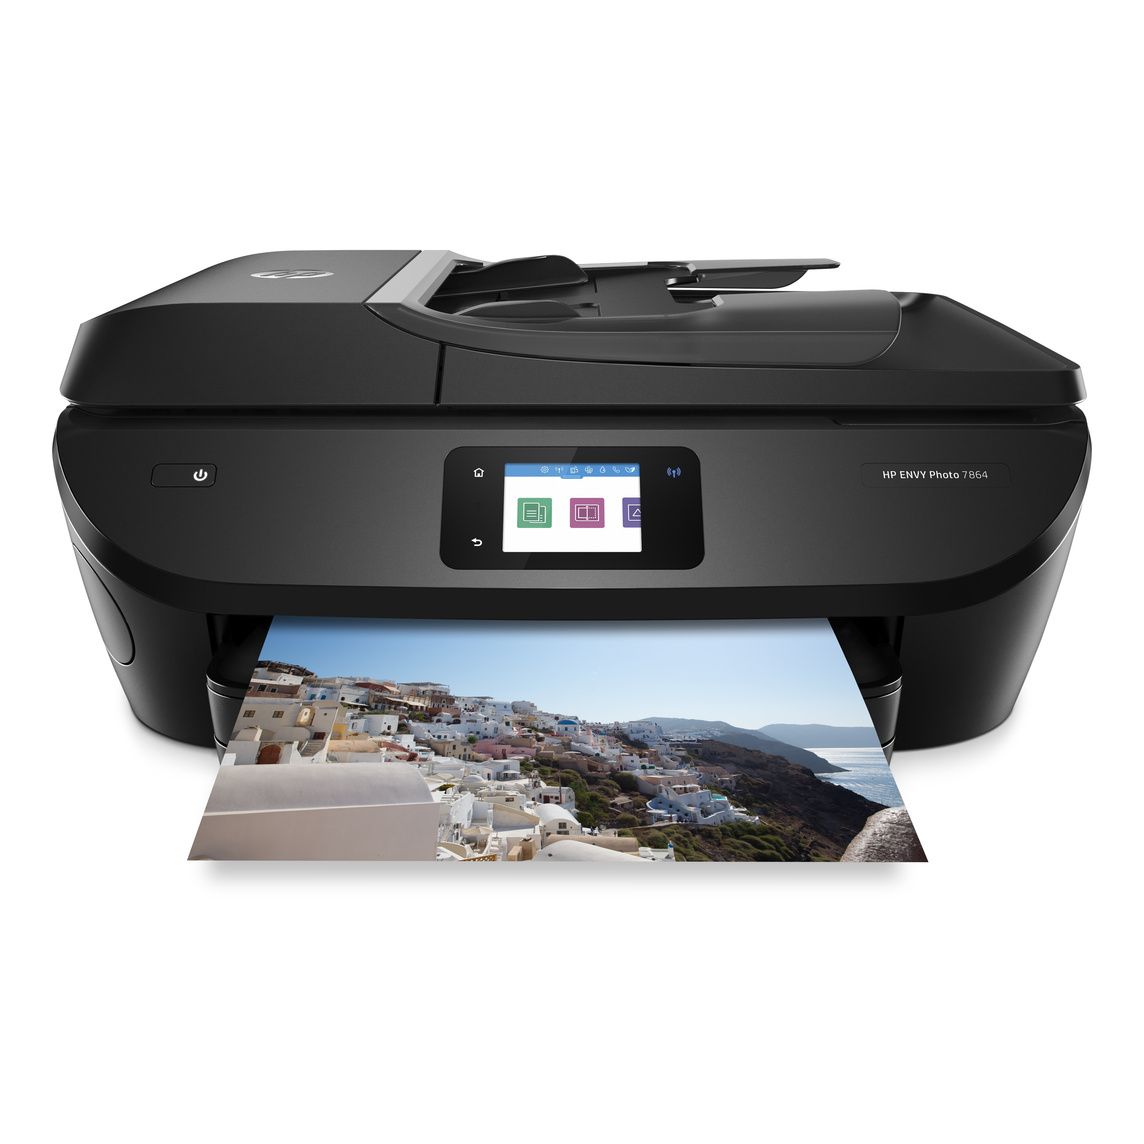 Hp Envy Photo 7864 All In One Printer